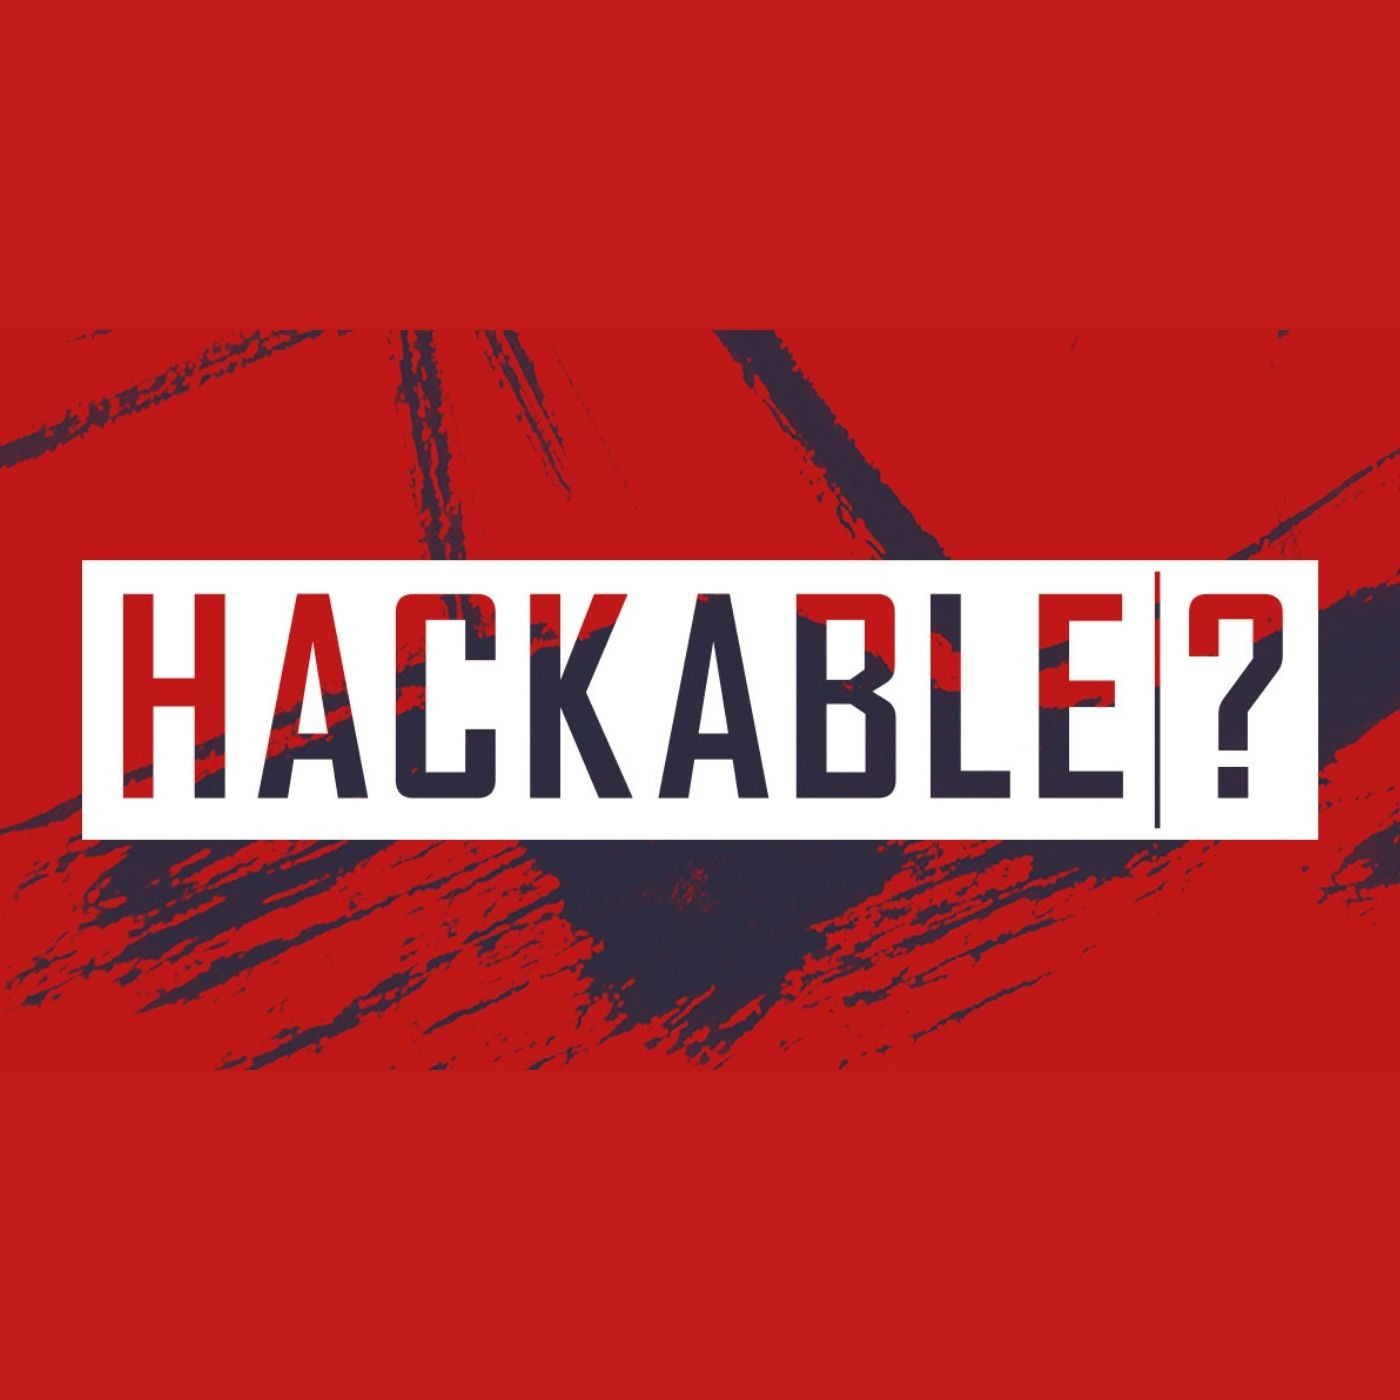 Hackable? – the making of a popular branded podcast